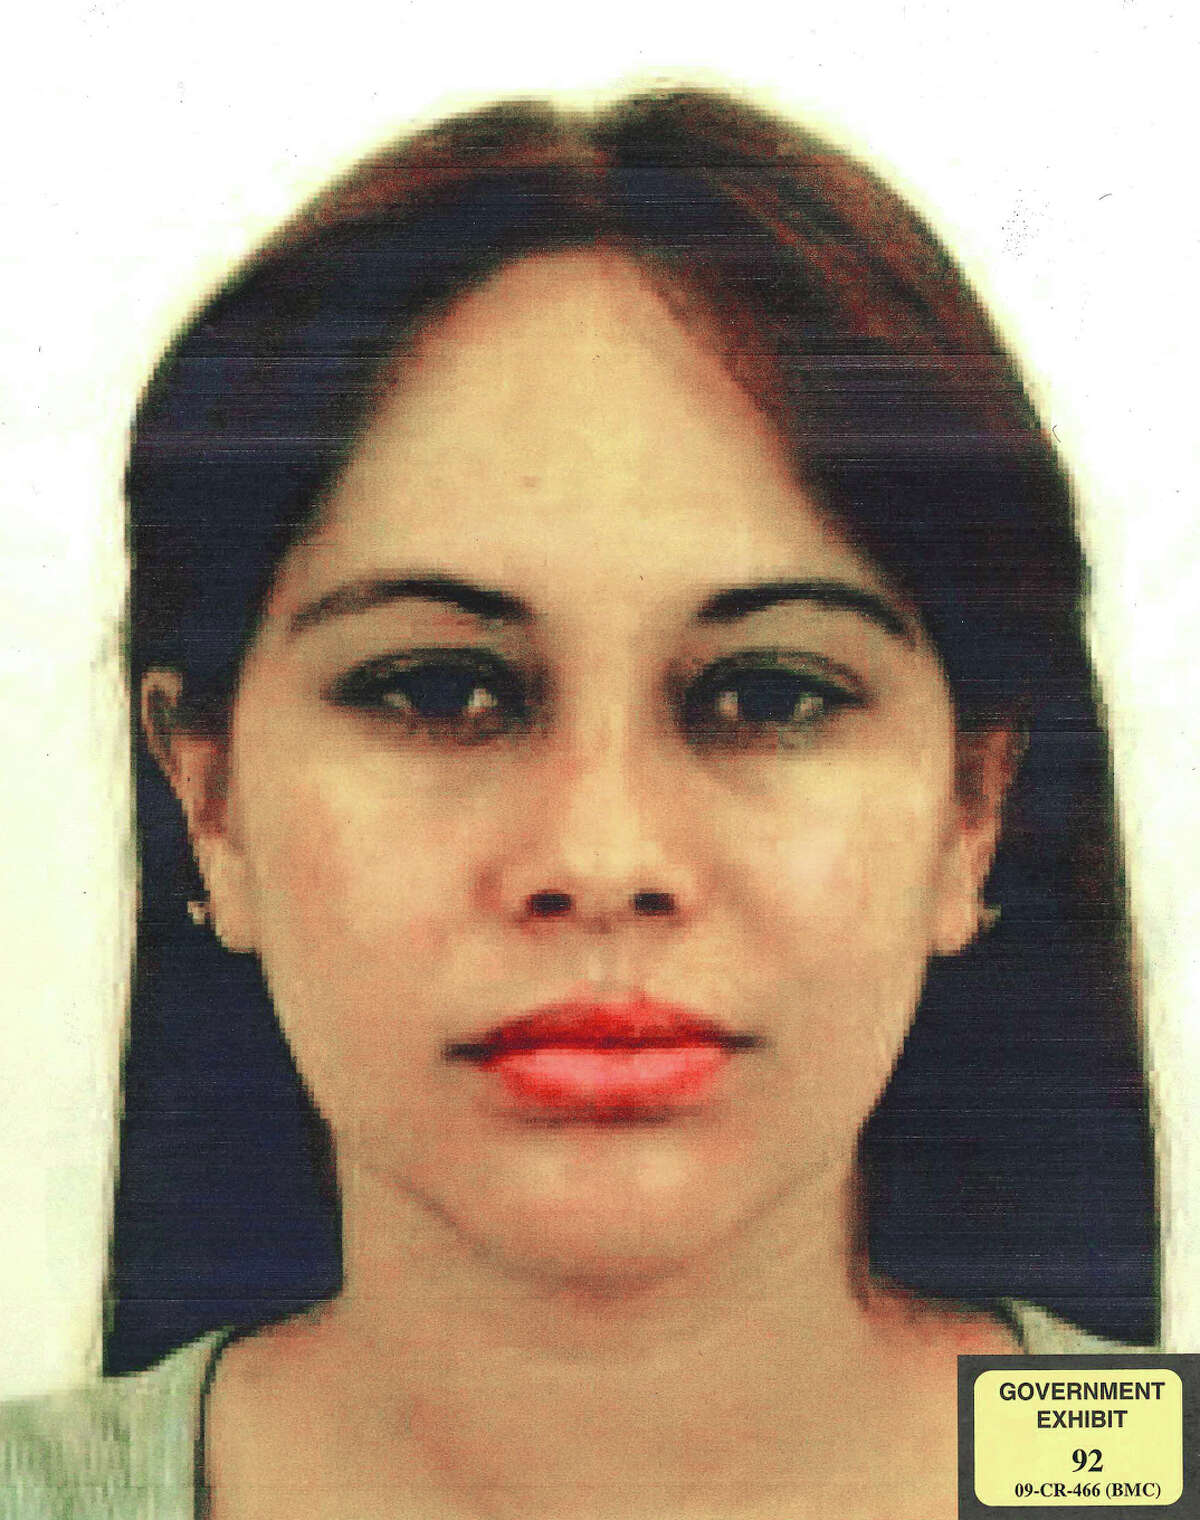 The mistress Witness Lucero Guadalupe Sanchez Lopez, a former local politician from Guzmán's home state of Sinaloa, testified that she and Guzmán had both business and romantic relationships. She detailed how she accompanied Guzmán as he escaped from Mexican marines at a safe house in Culiacán in 2014.